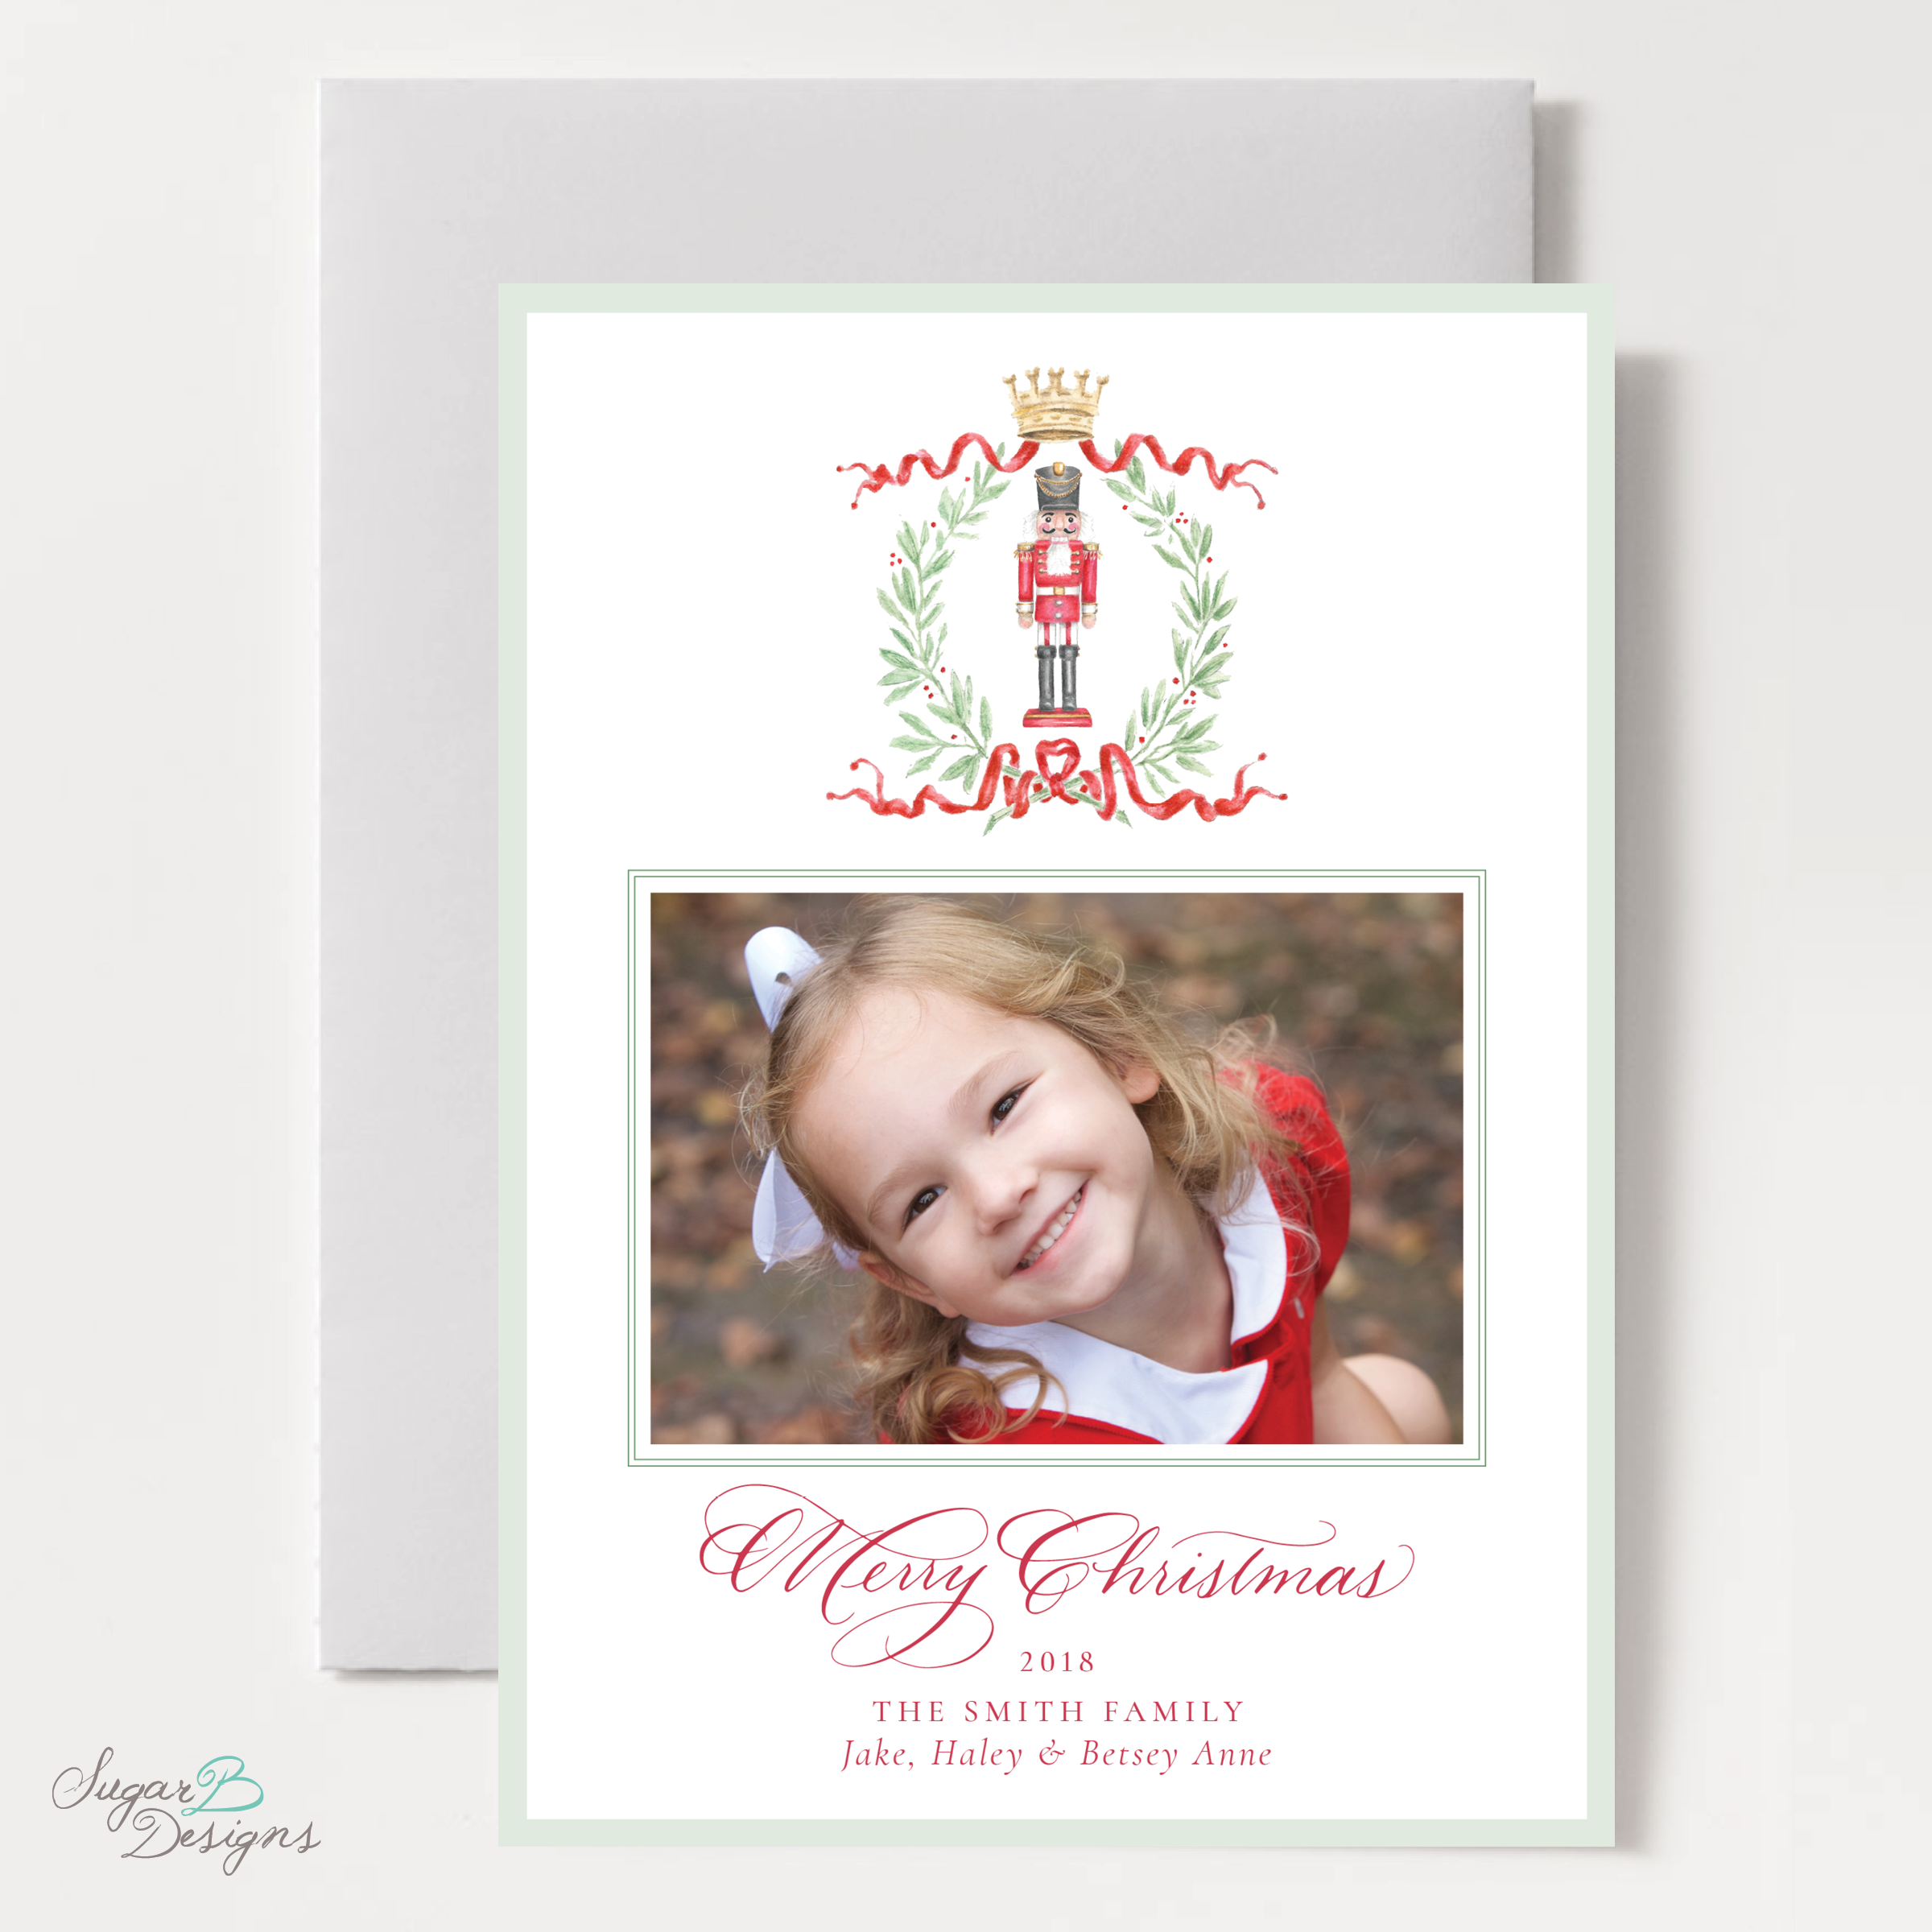 Nutcracker Royal Wreath Christmas Card front by Sugar B Designs.png